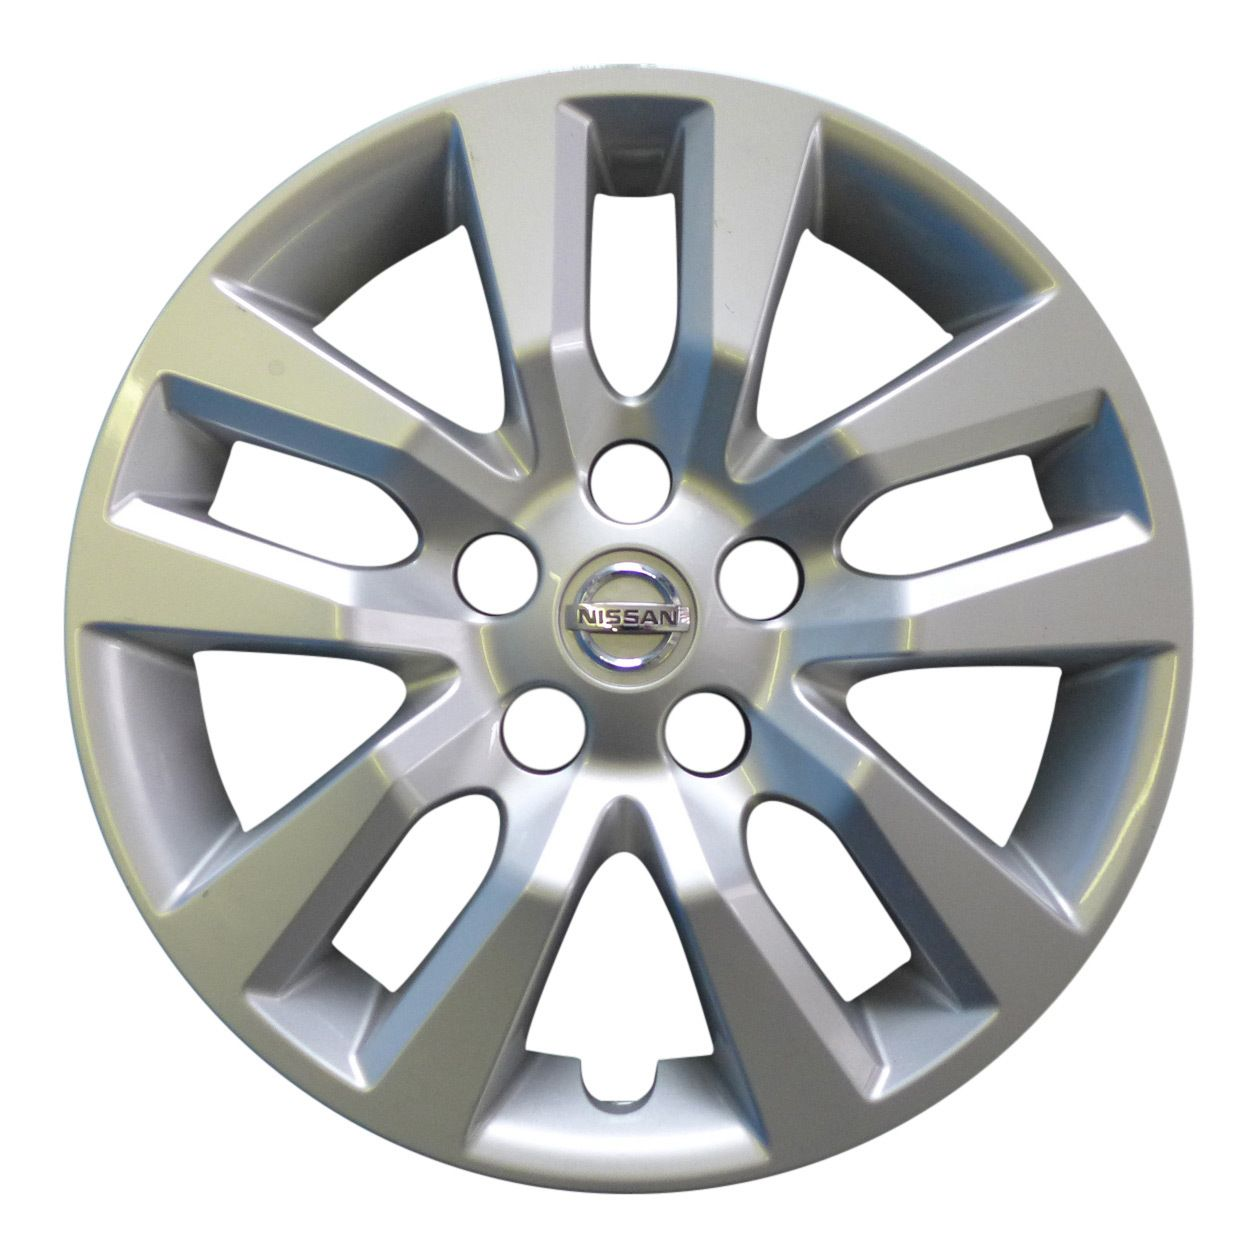 "2013 2014 2015 Nissan Altima Hubcap / Wheel Cover 16"" 53088 NEW  #Hubcaps #WheelCovers https://goo.gl/lBVHXg"